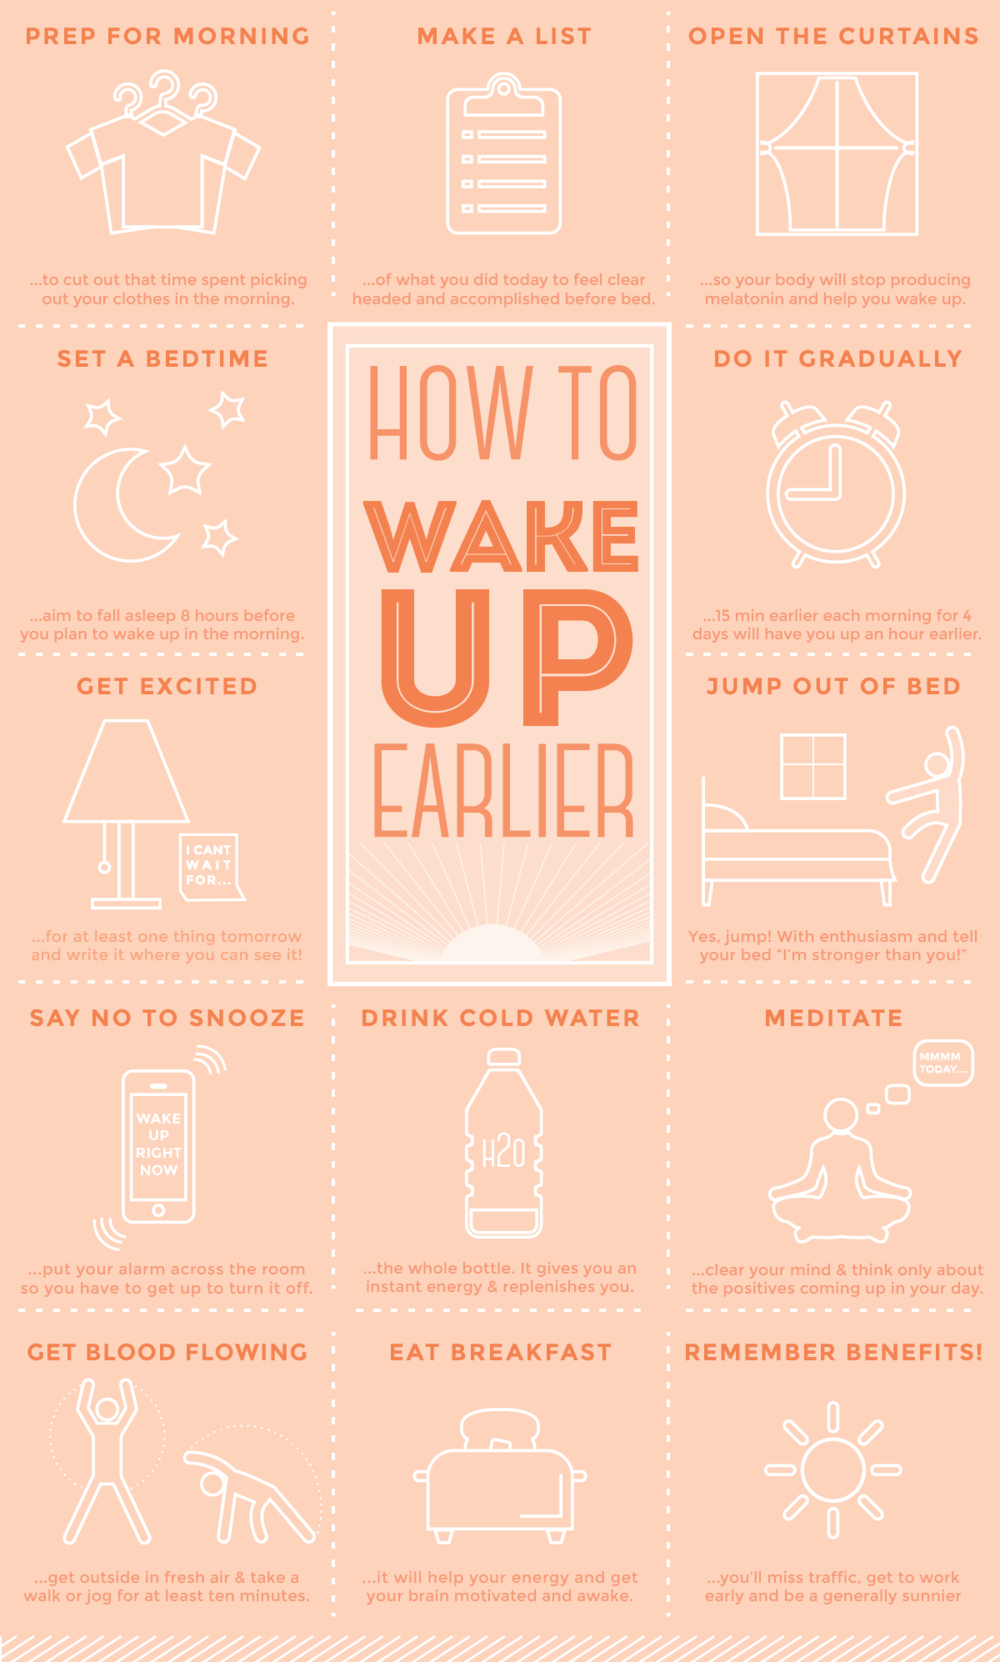 https://fitandfrenzy.wordpress.com/2014/04/14/how-to-wake-up-early/